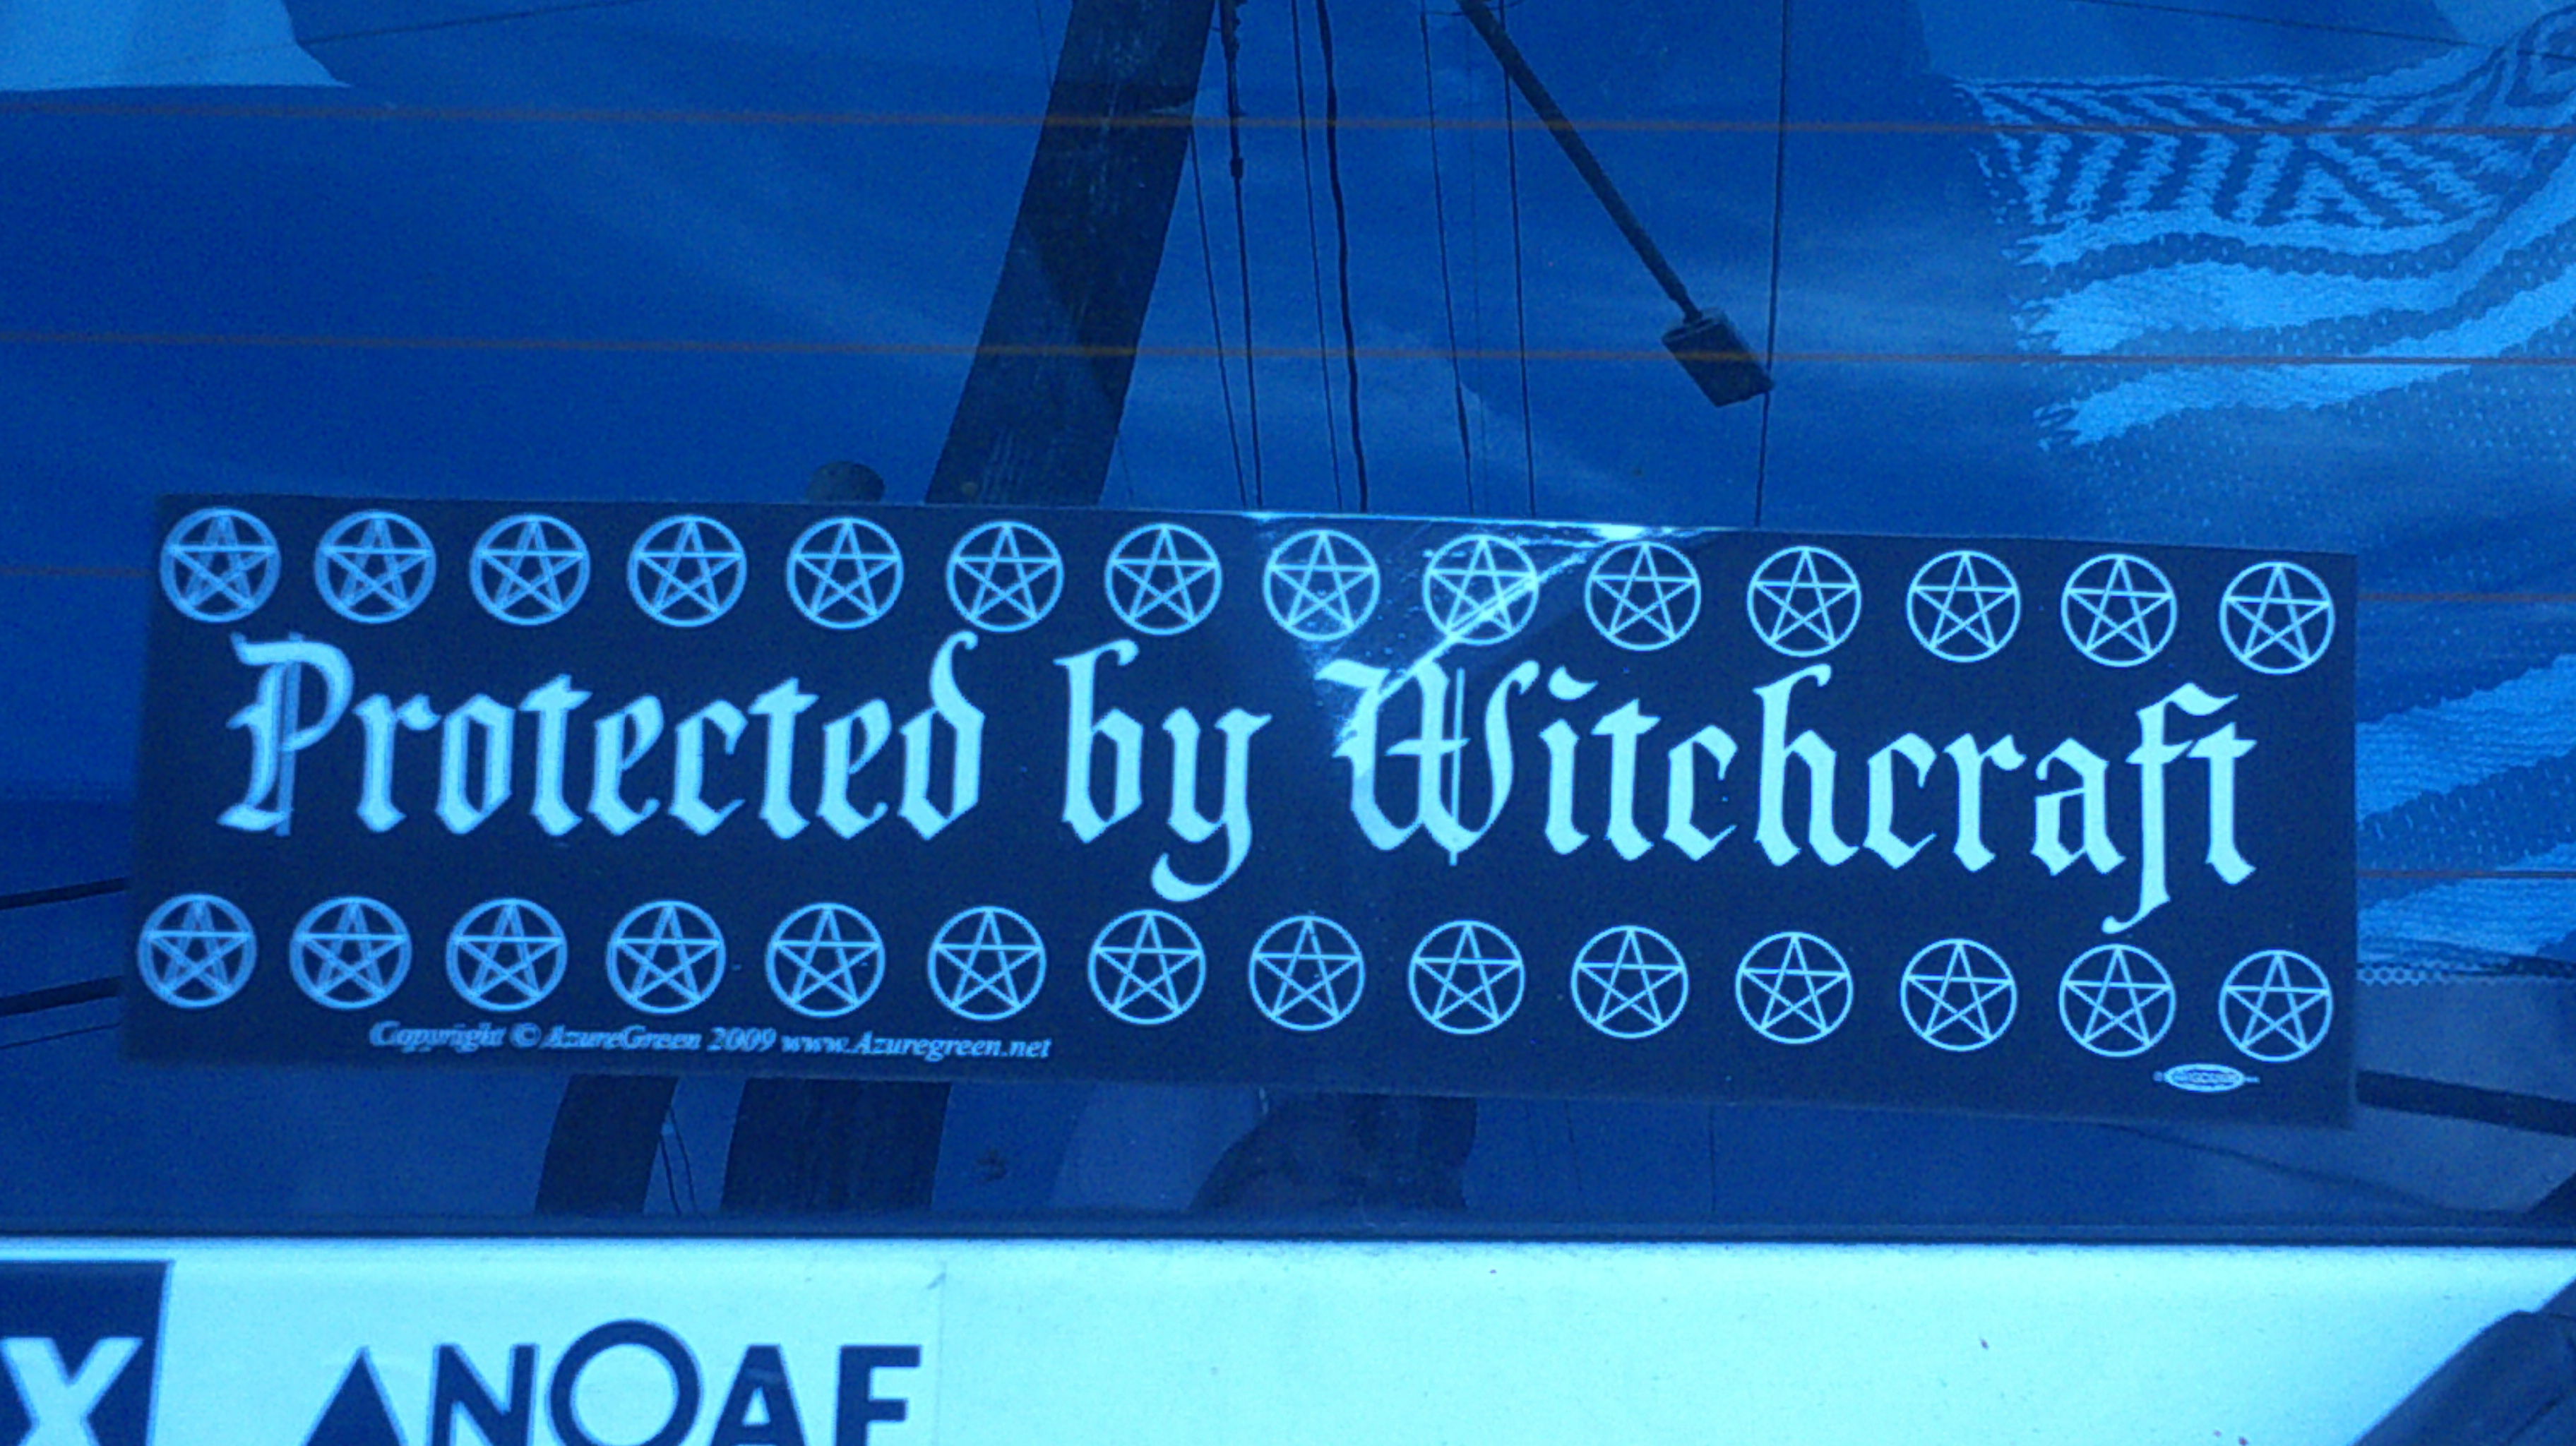 WITCHCRAFT RUNS THESE ABORTION SLAUGHTER HOUSES!